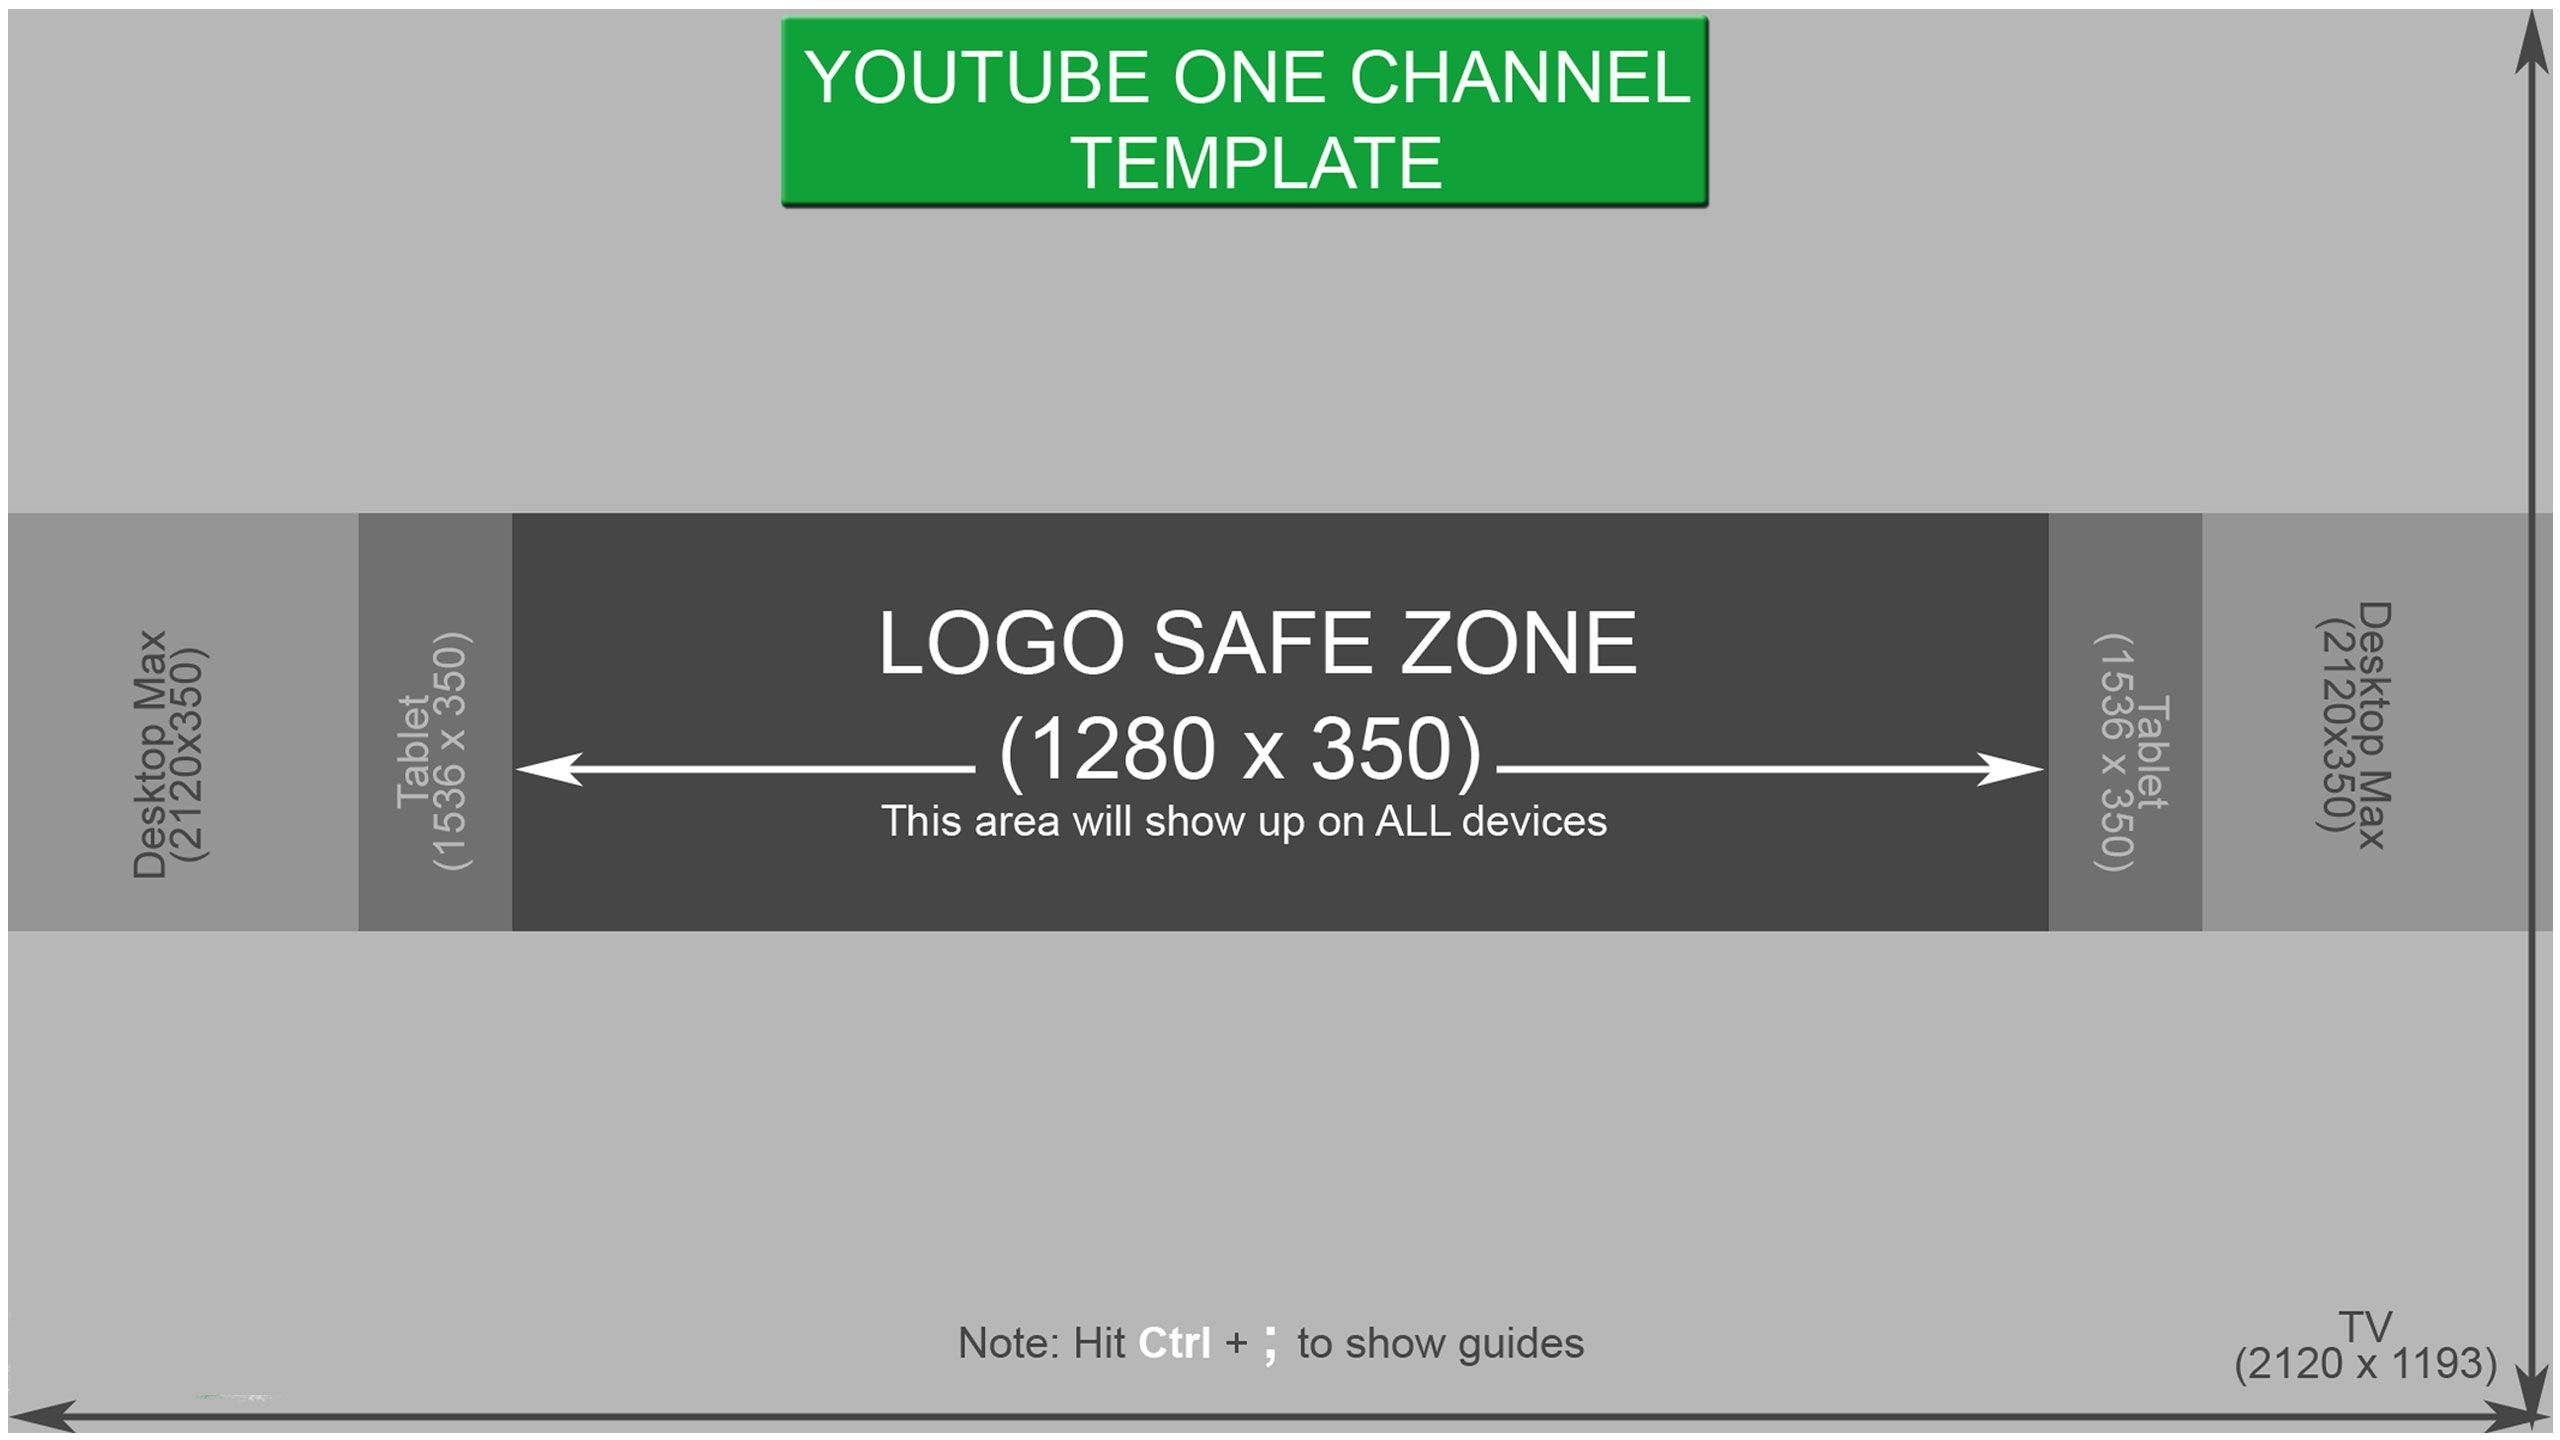 Getting Started With the New #YouTube One Channel Design ...